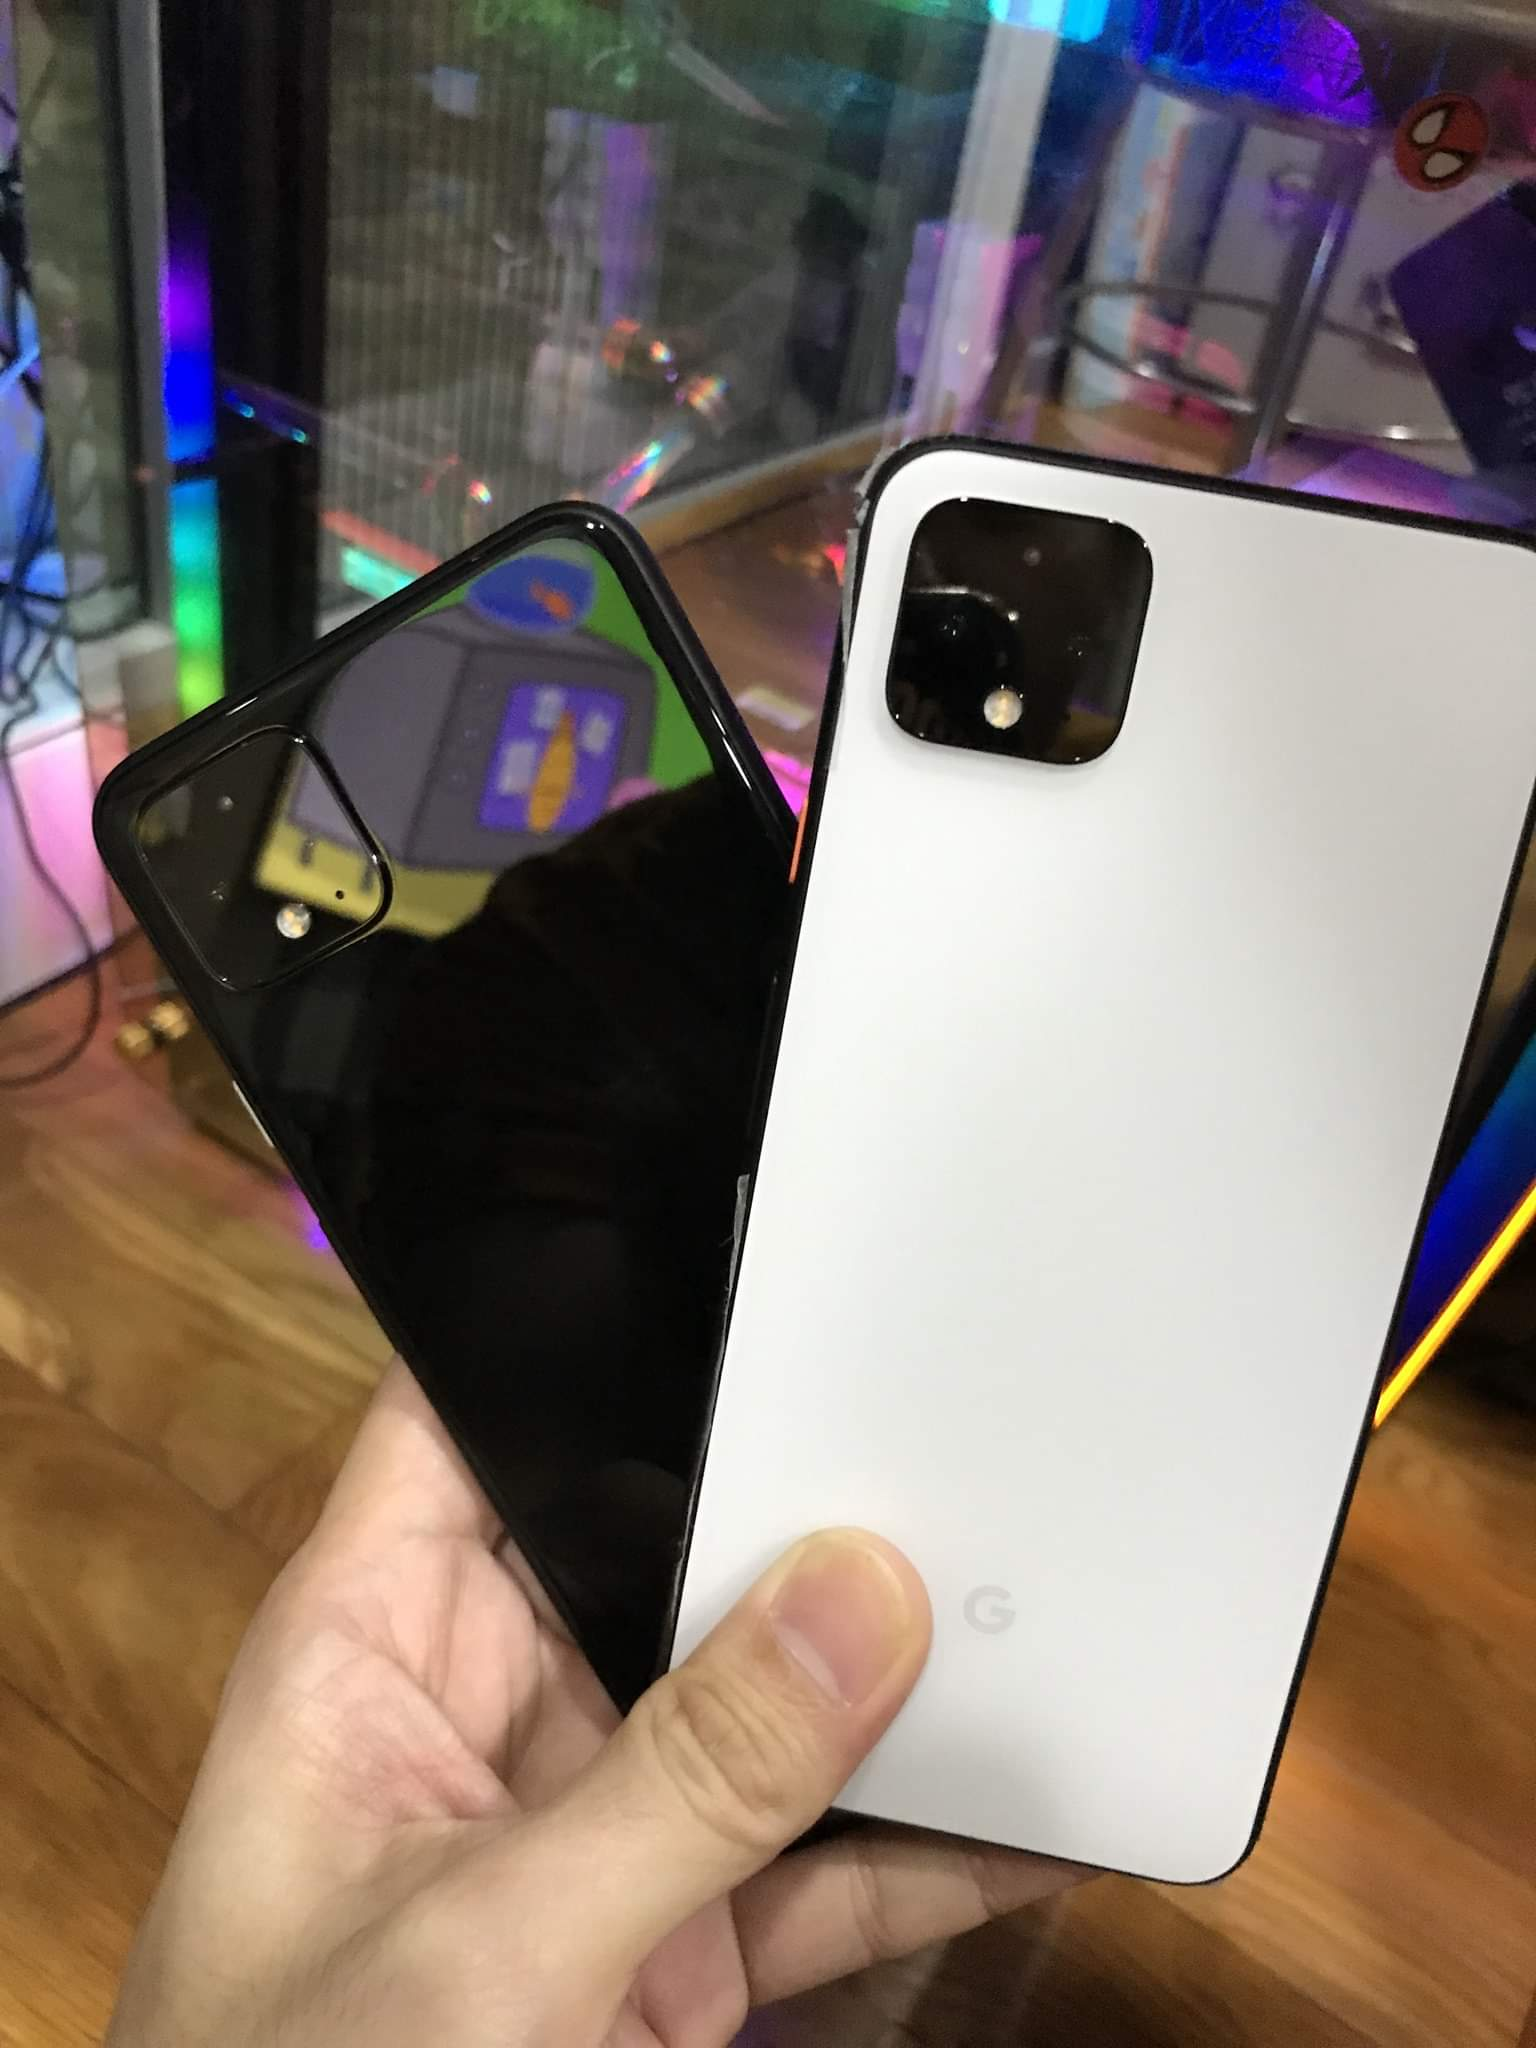 32U5VxCe5sM4KRyQs5ygXi - Latest Pixel 4 leak offers our best look at black and white color variants